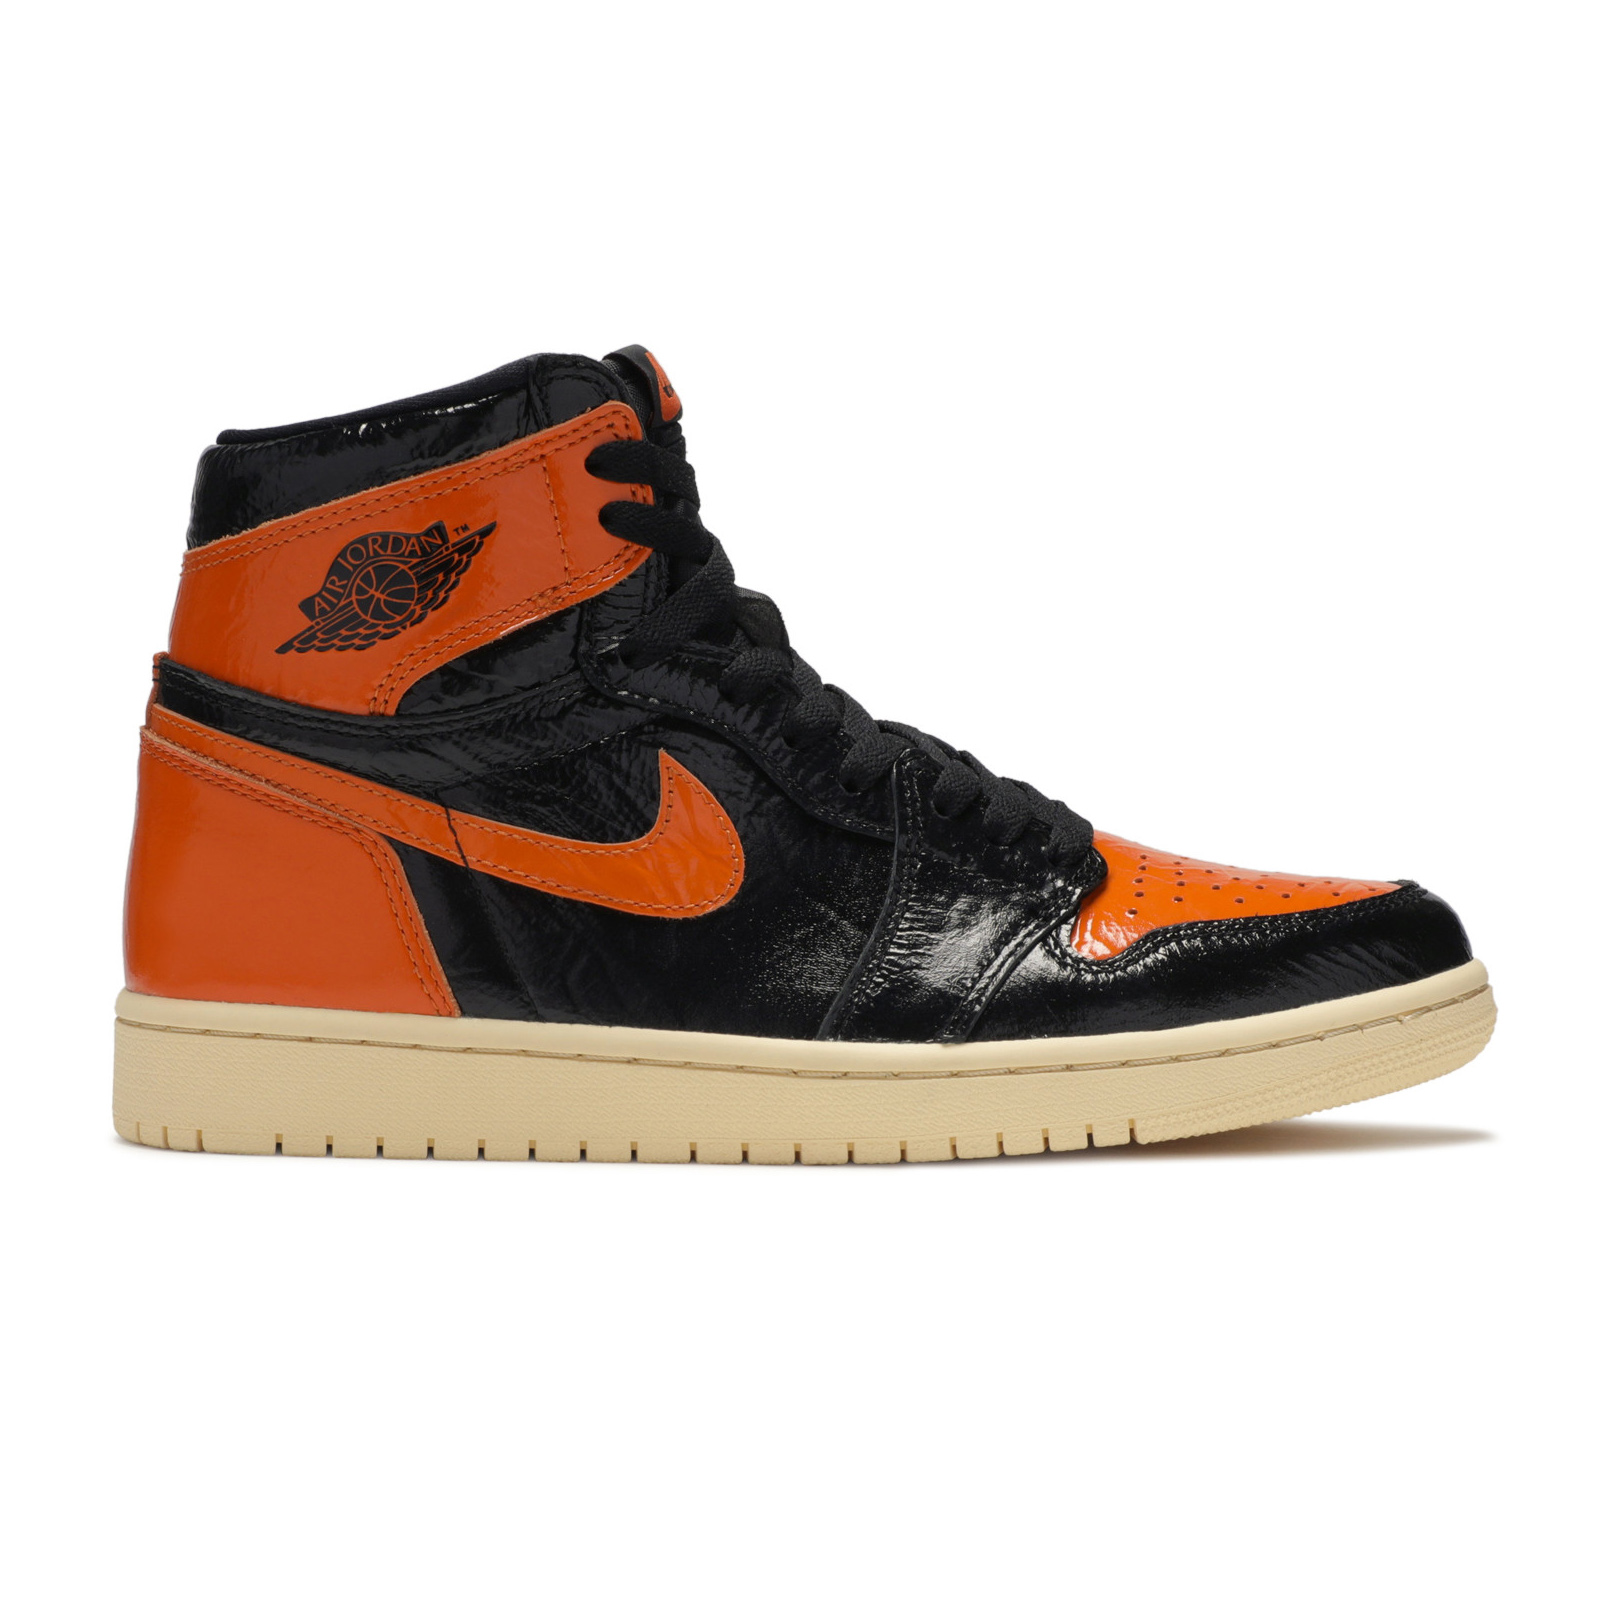 Jordan-1-Retro-Shattered-Backboard-3